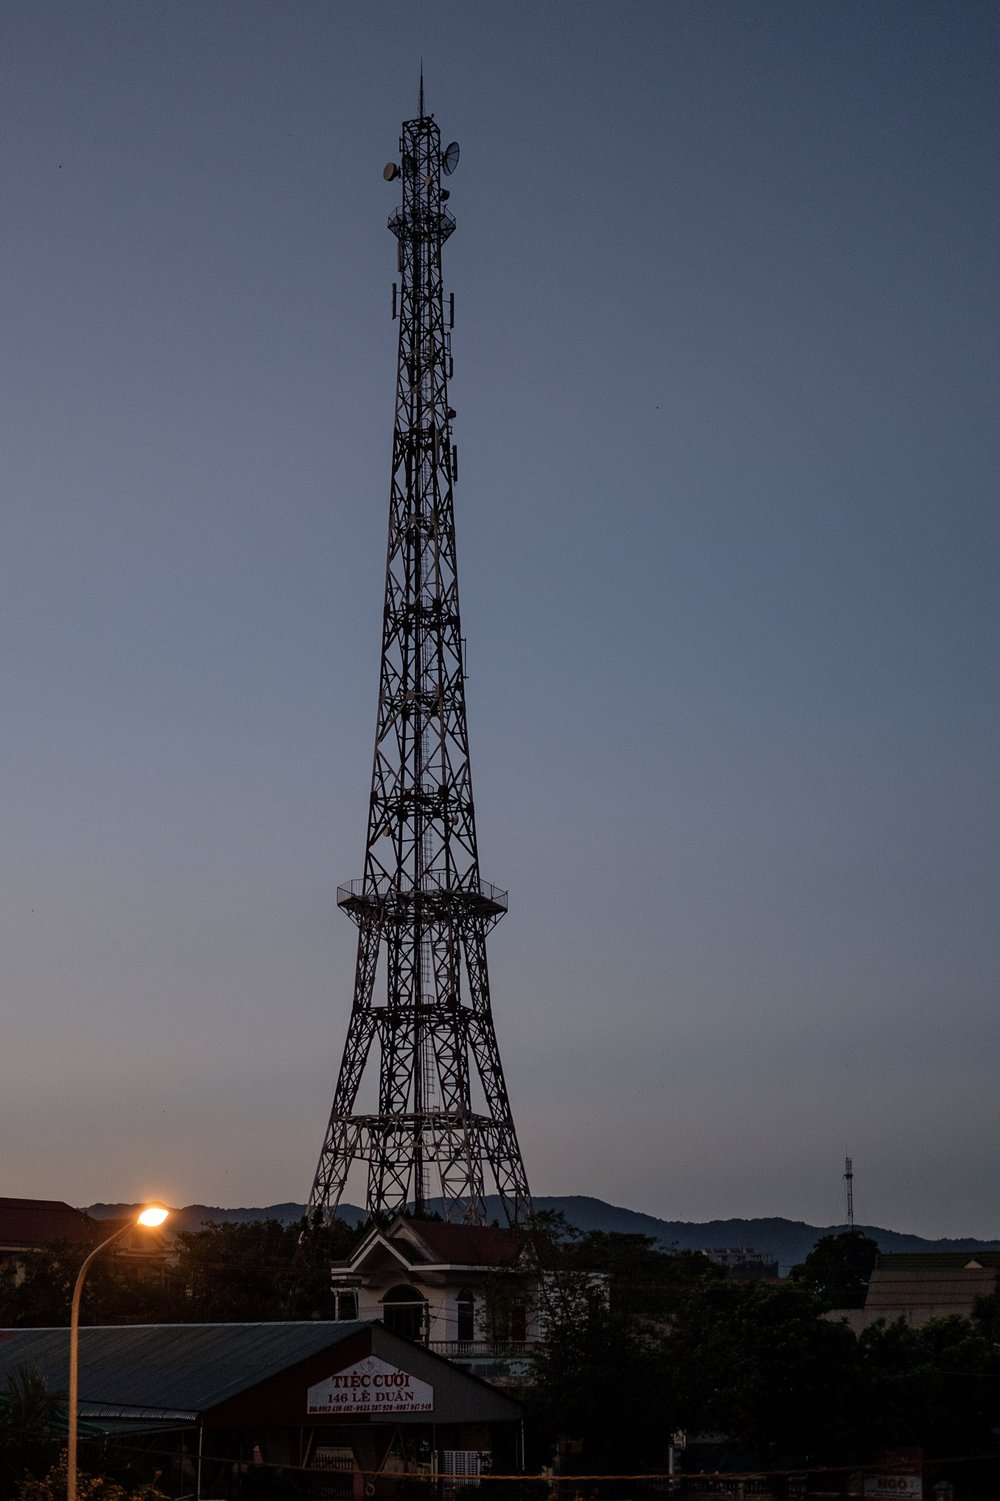 G: Khe Sanh radio tower, seen from my hotel room.